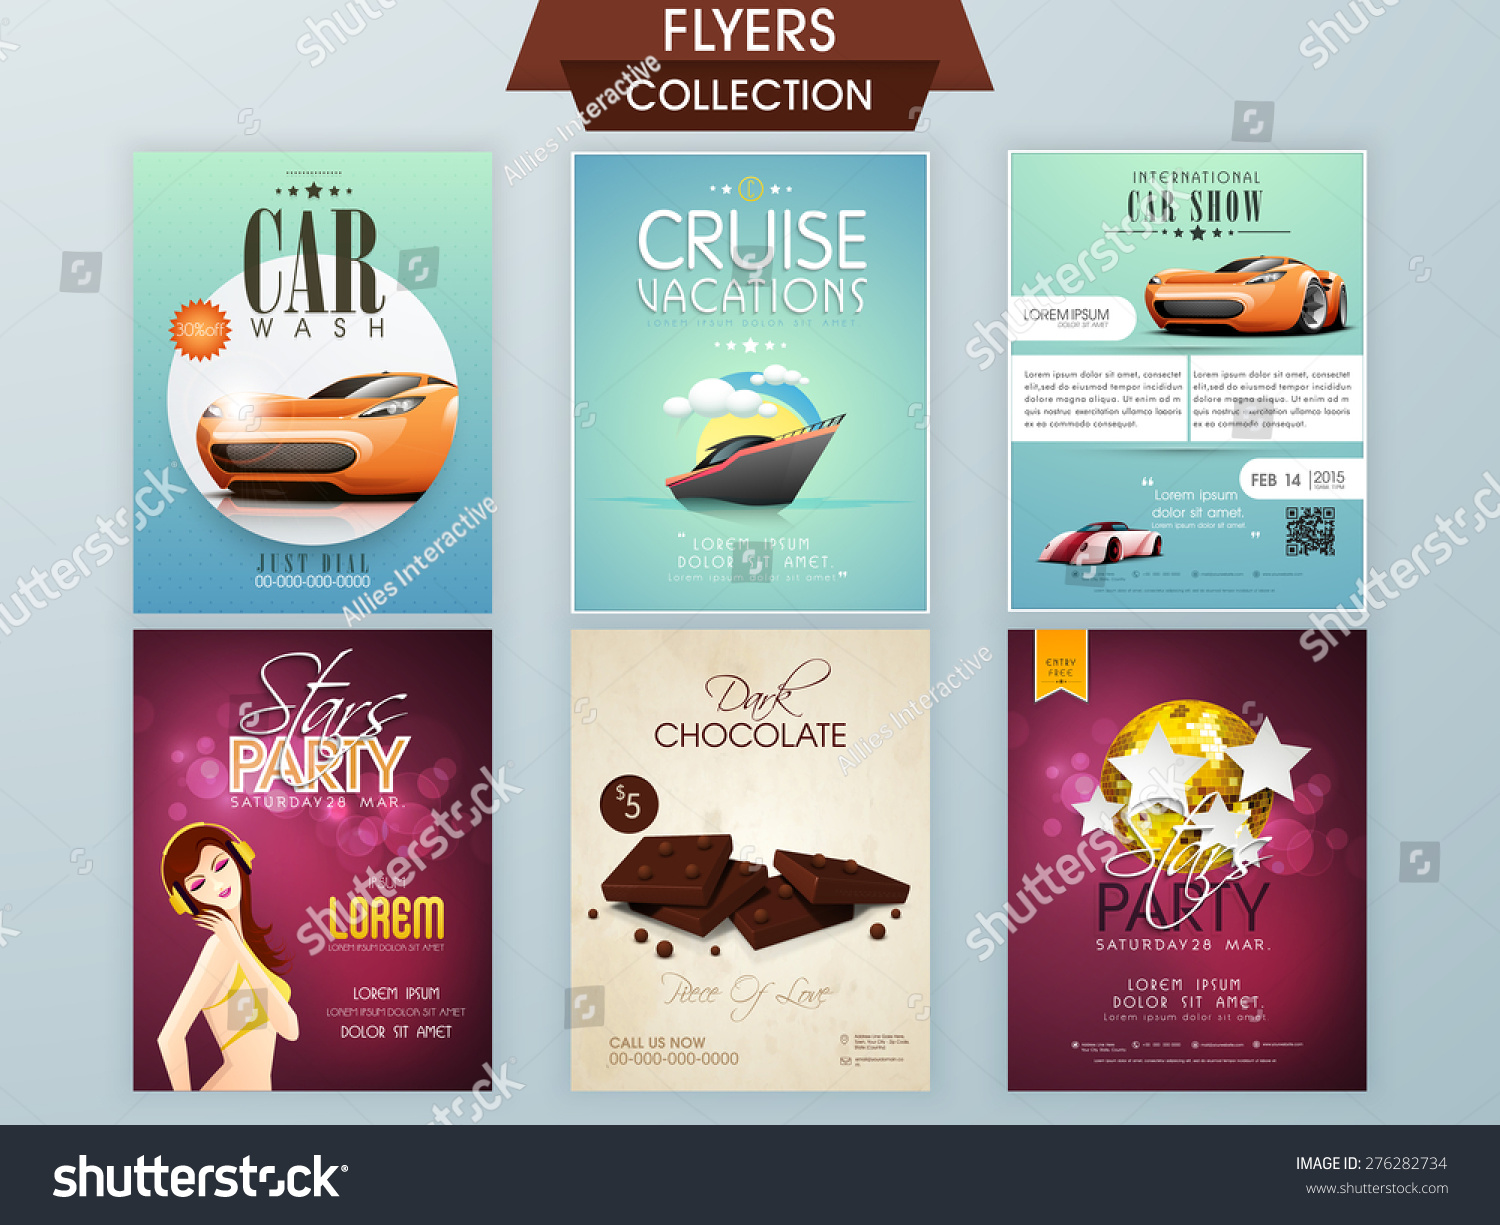 Stylish Flyers Car Wash Cruise Vacations Vectores En Stock 276282734 ...